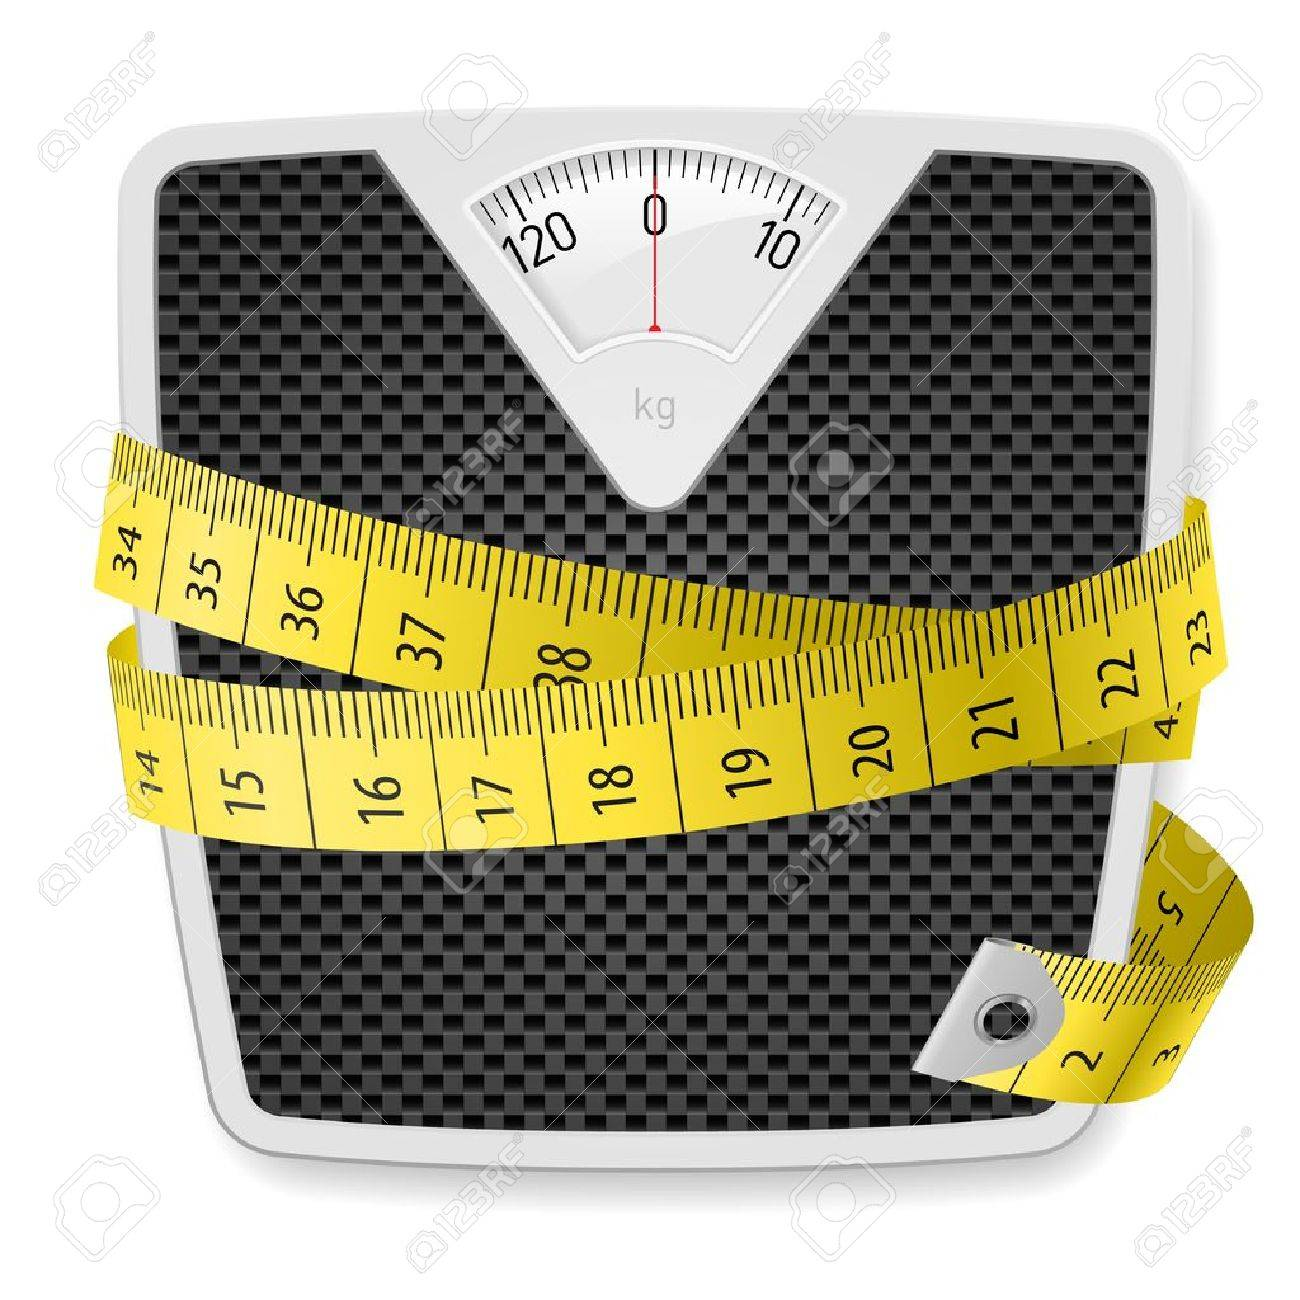 Weights and tape measure. Illustration on white background - 15232318